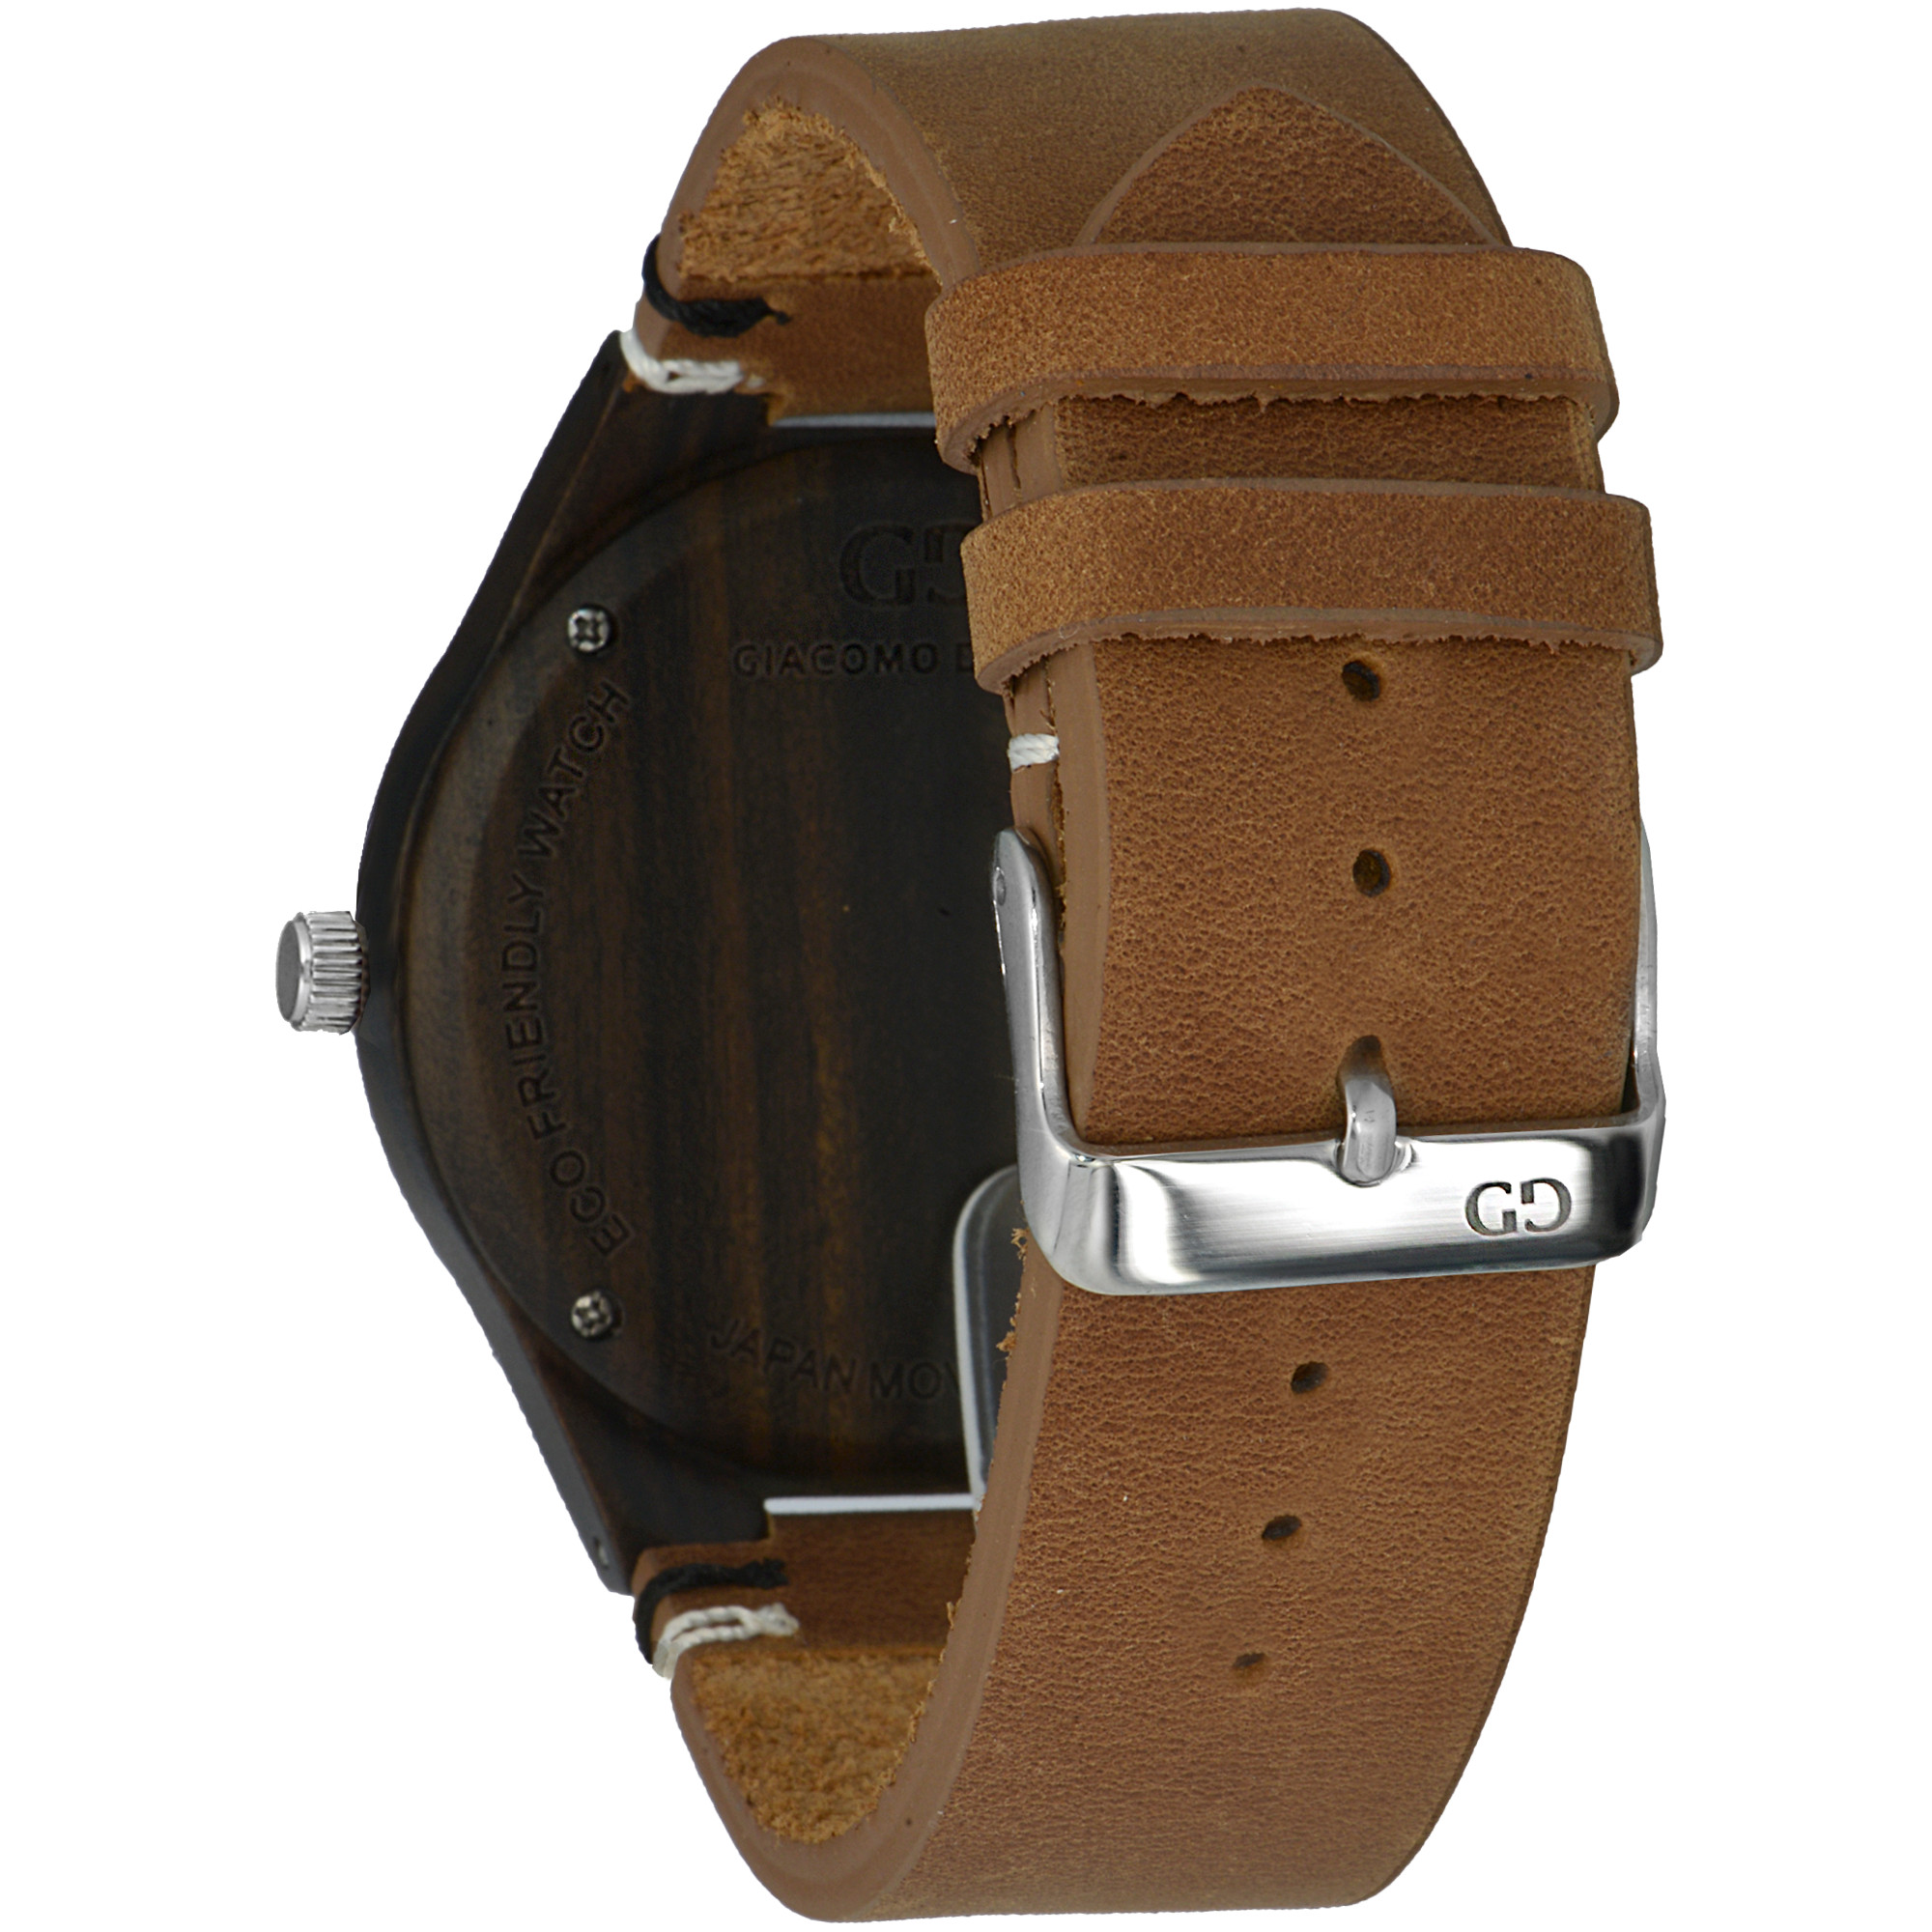 Men's watch Giacomo Design Legno Sul Bar walnutwood thick leather strap